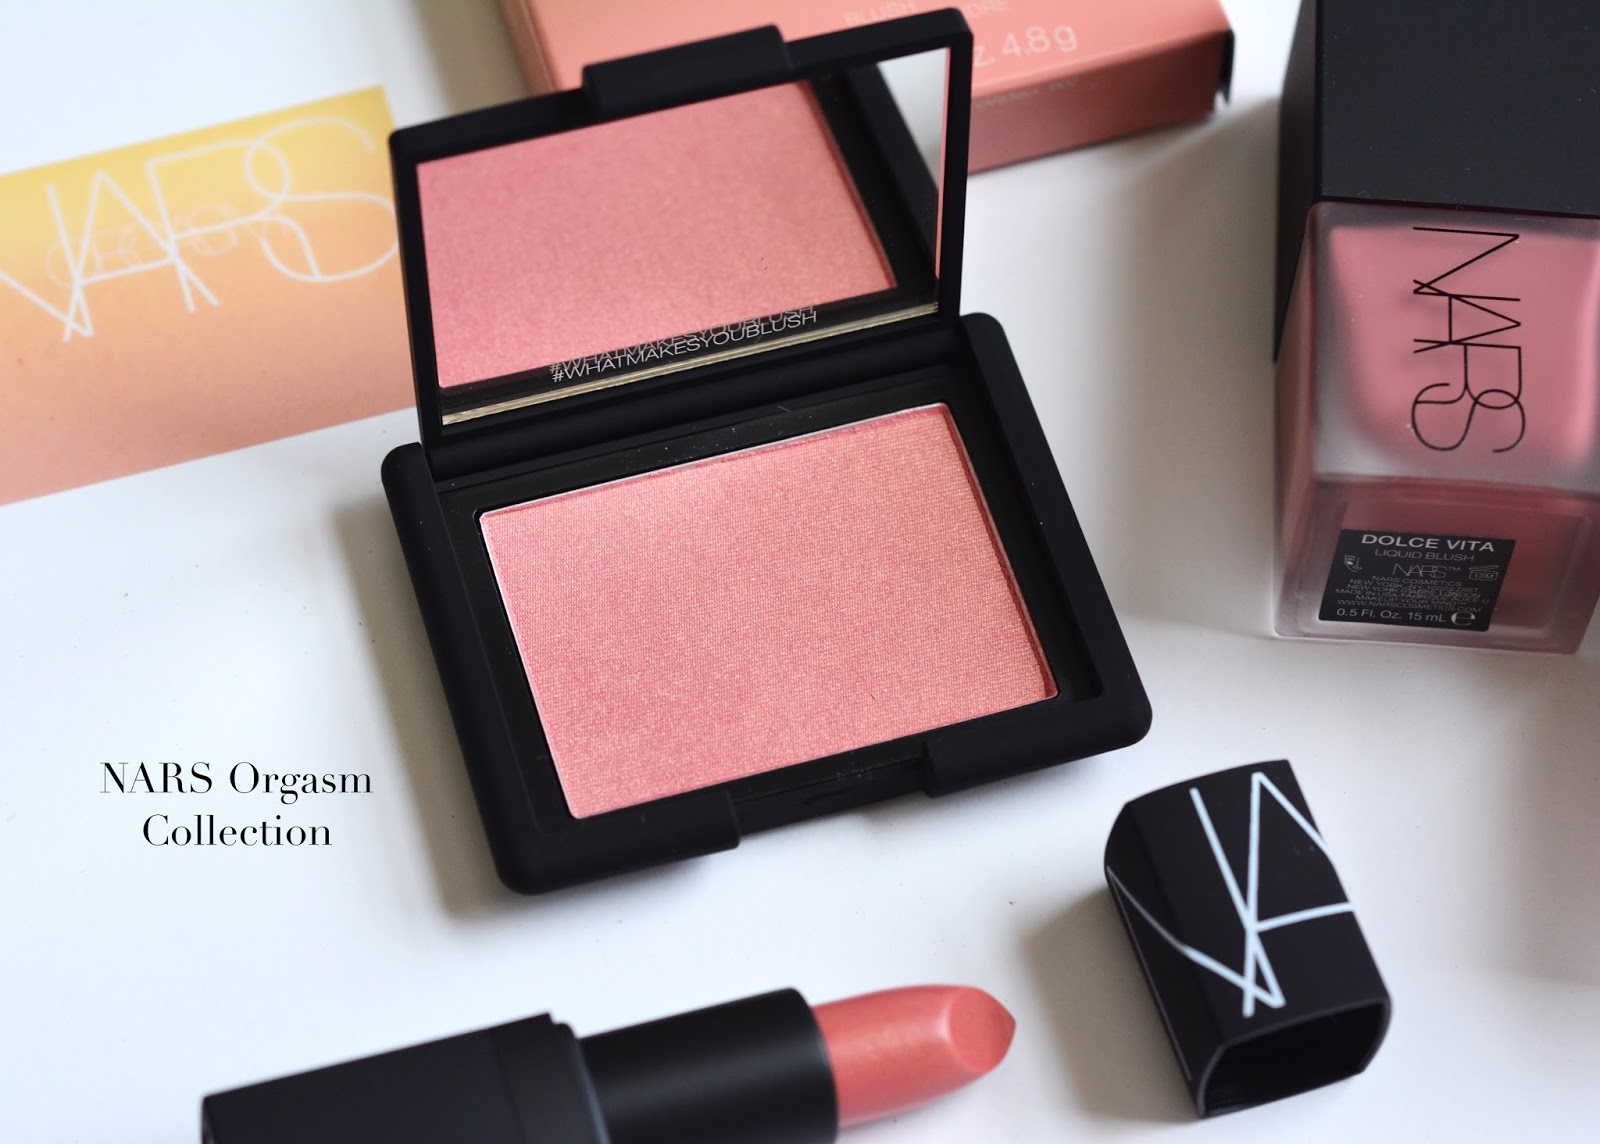 NARS Liquid Blushes Torrid Luster Dolce Vita Orgasm Collection Review Swatches